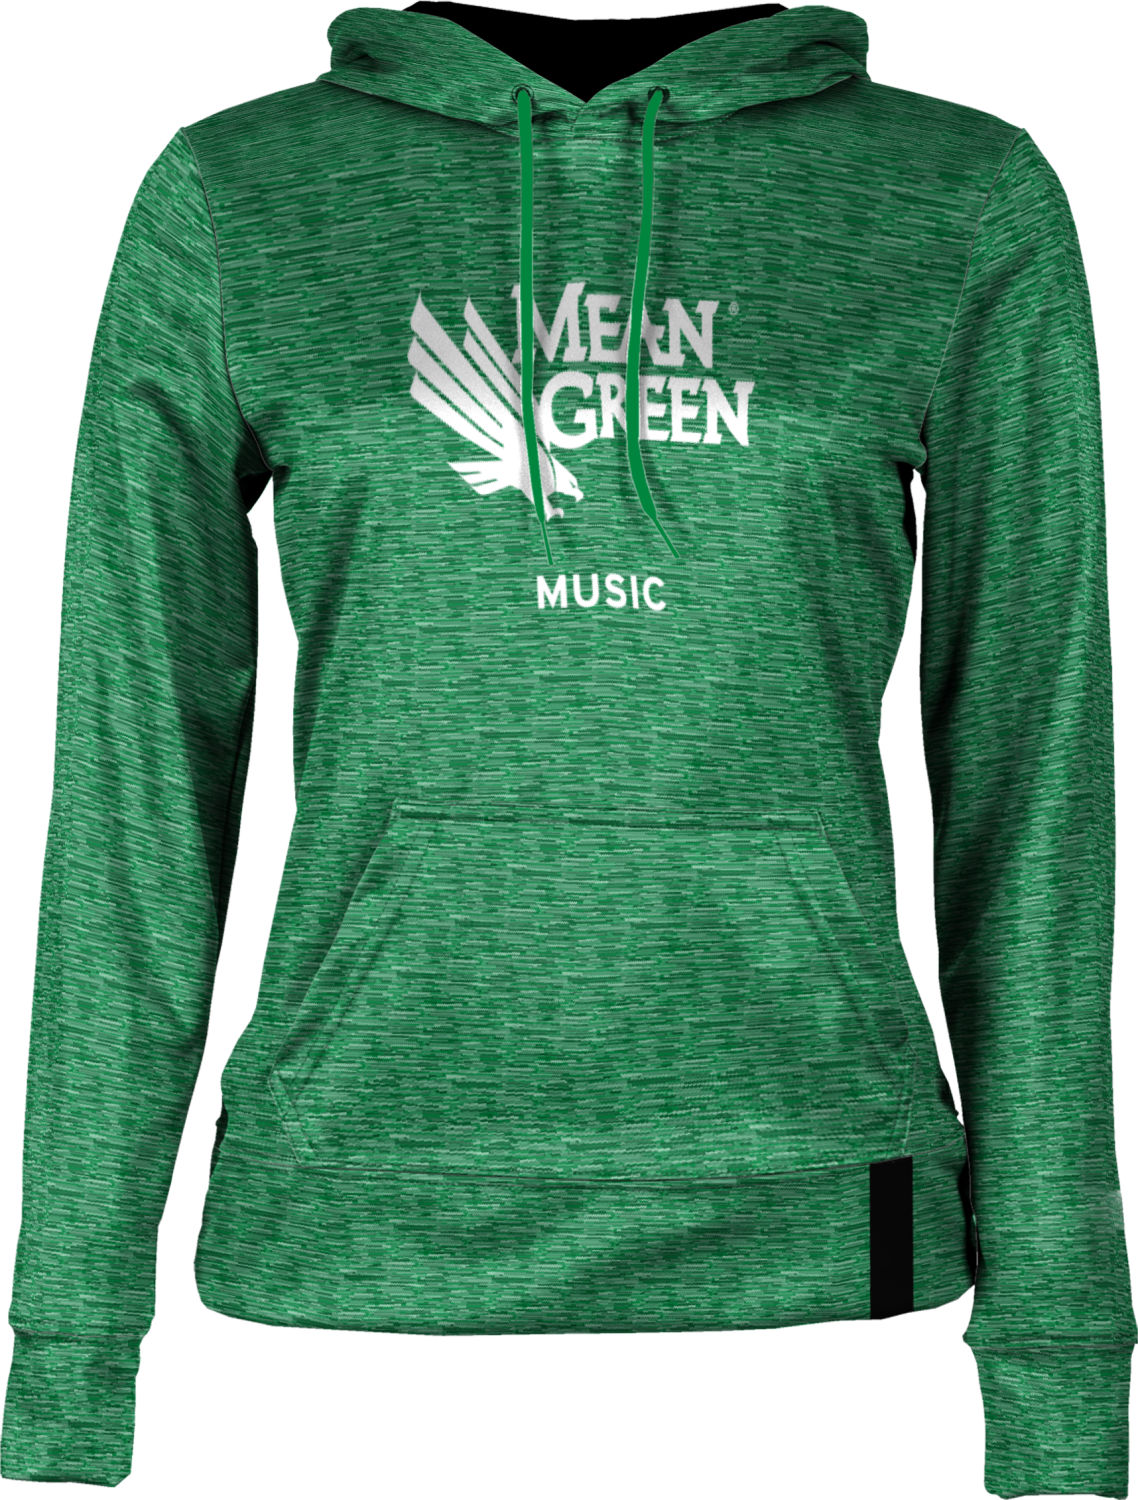 Women's ProSphere Sublimated Hoodie - Music